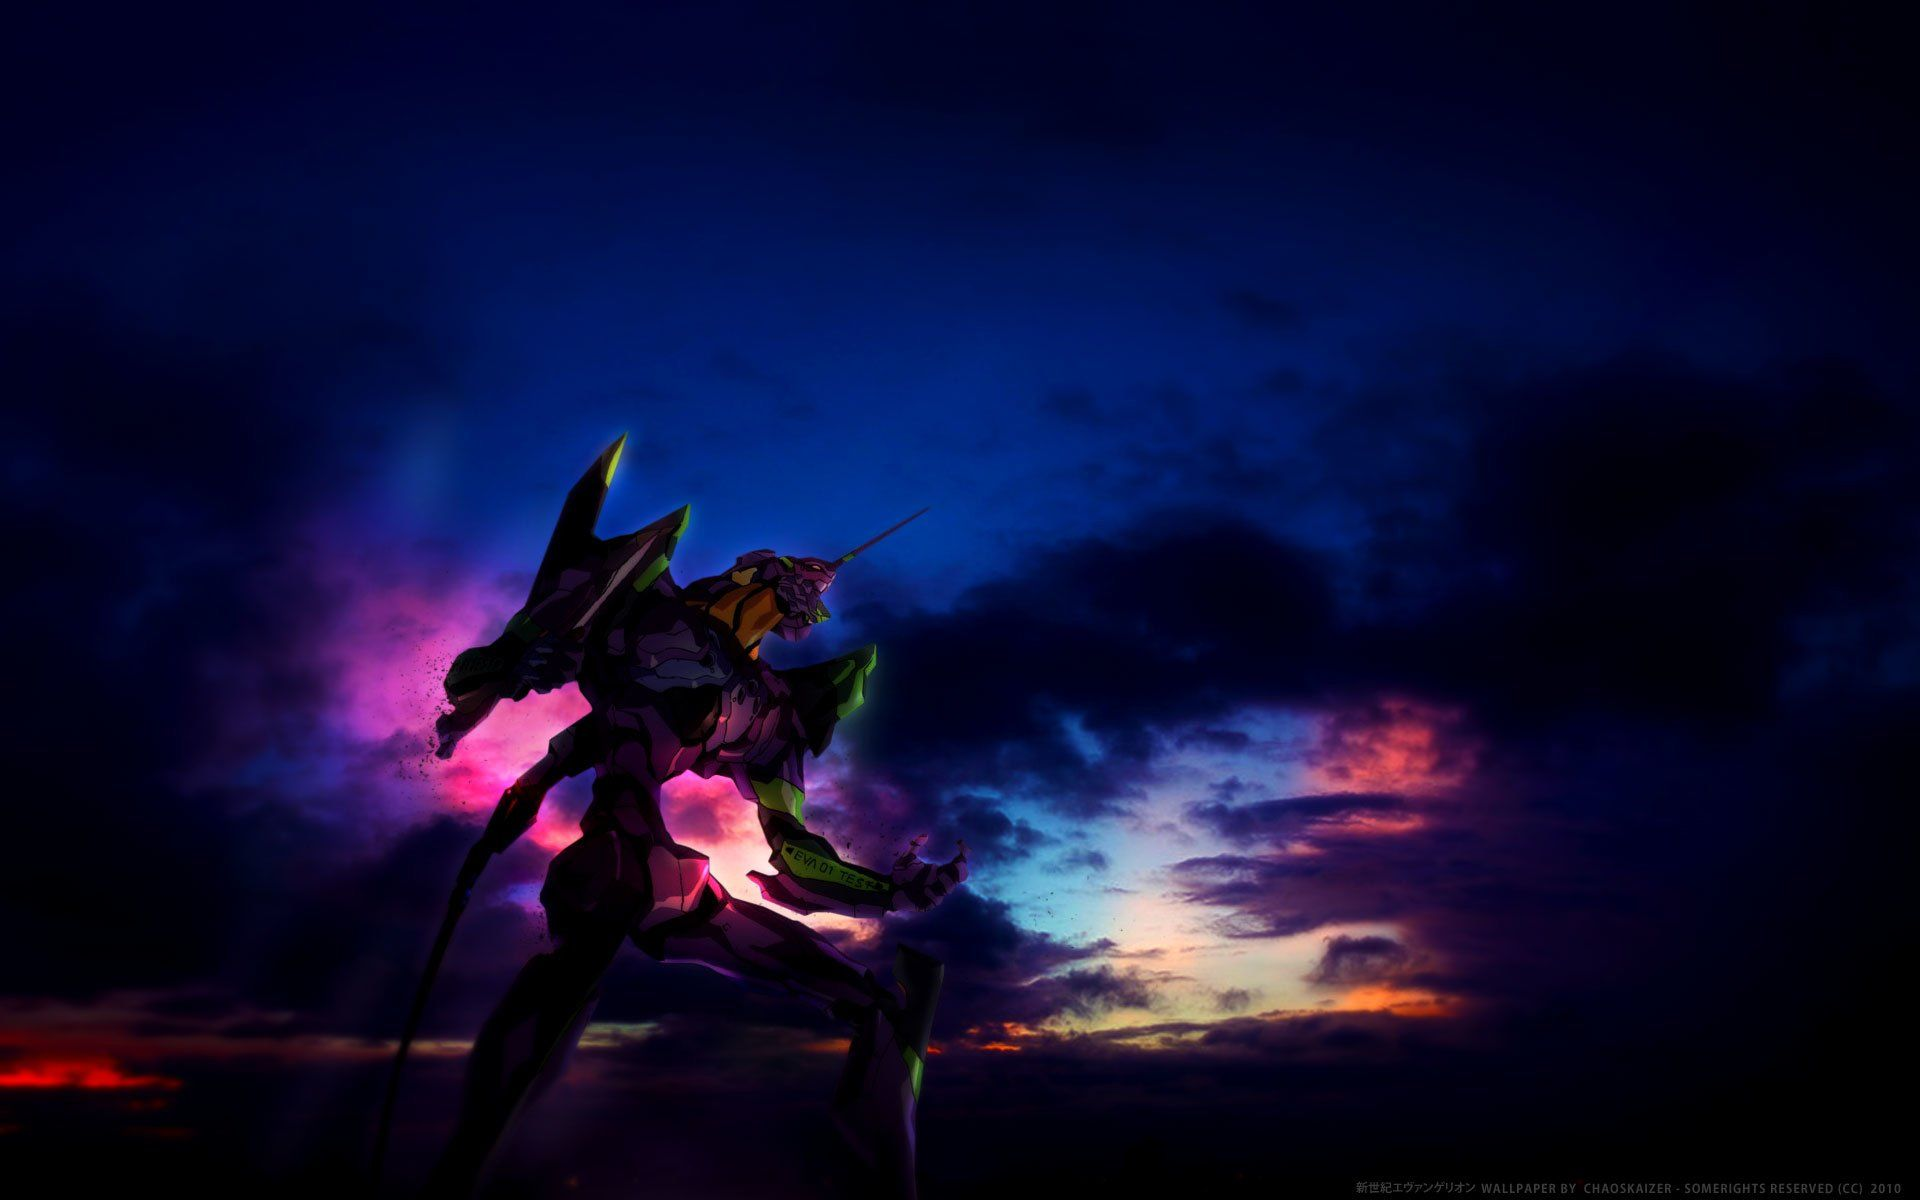 Rebuild Of Evangelion Wallpapers Desktop Background Neon Genesis Evangelion Evangelion Neon Evangelion